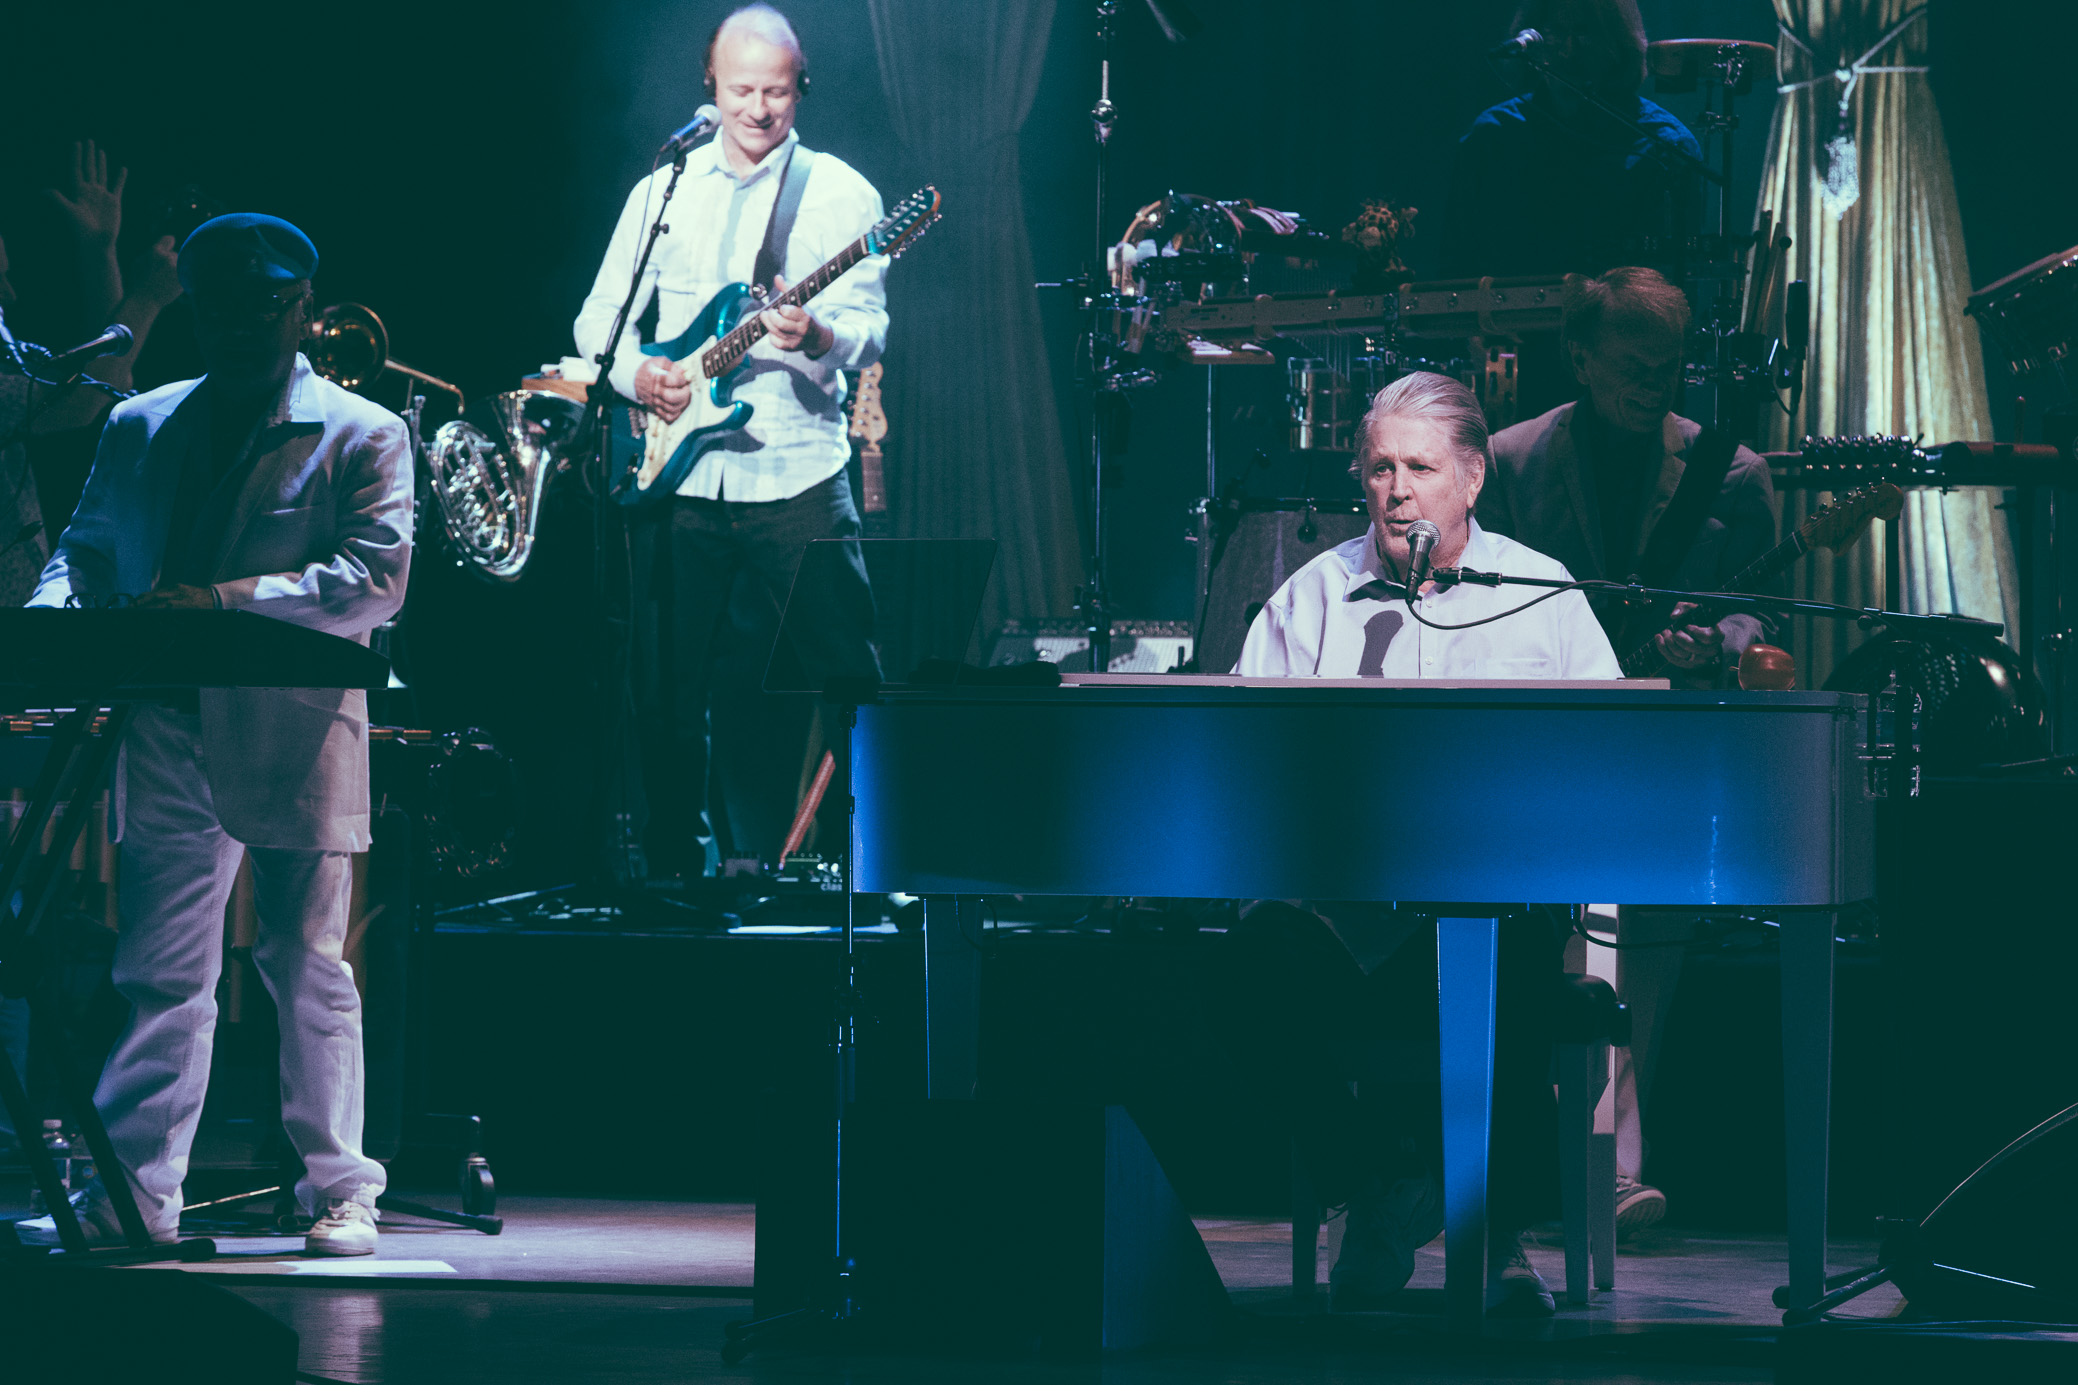 Brian Wilson performs in concert at the Birmingham-Jefferson Civic Center Concert Hall in Birmingham, Alabama on May 9th, 2017. (Photo by David A. Smith/DSmithScenes)